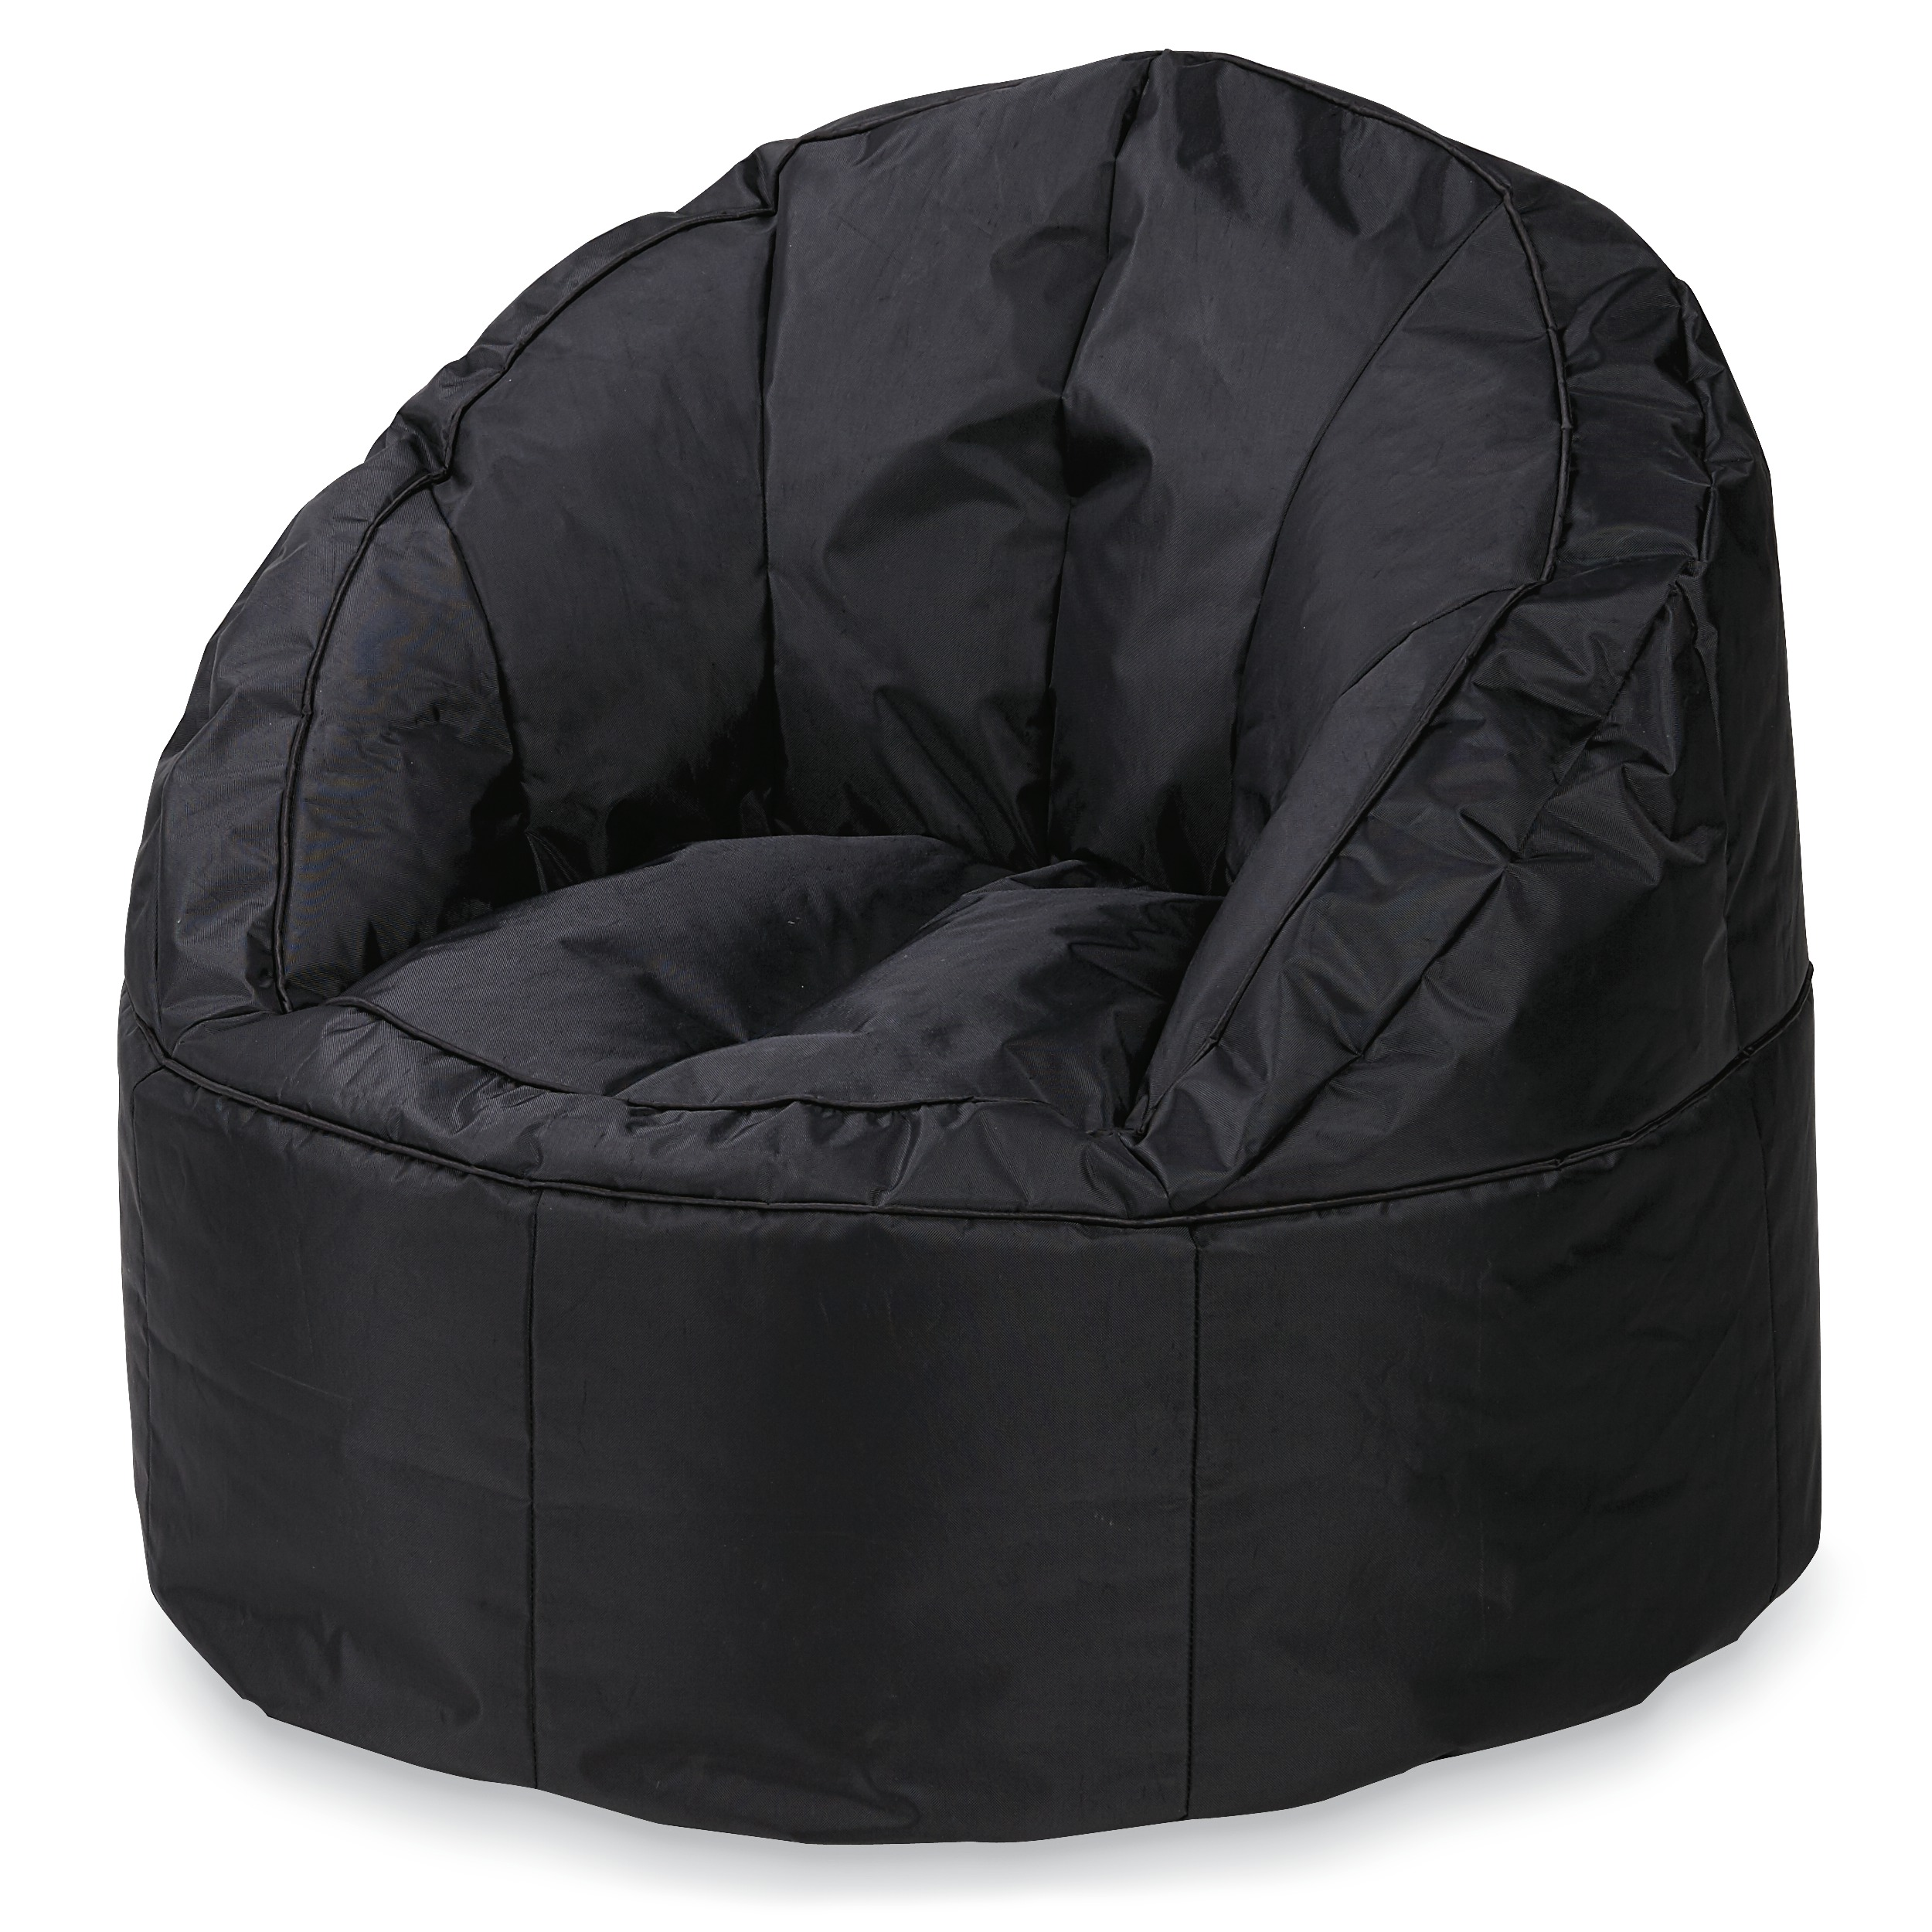 Where Can I Buy A Bean Bag Chair Adult Bean Bag Lounger Shop Your Way Online Shopping